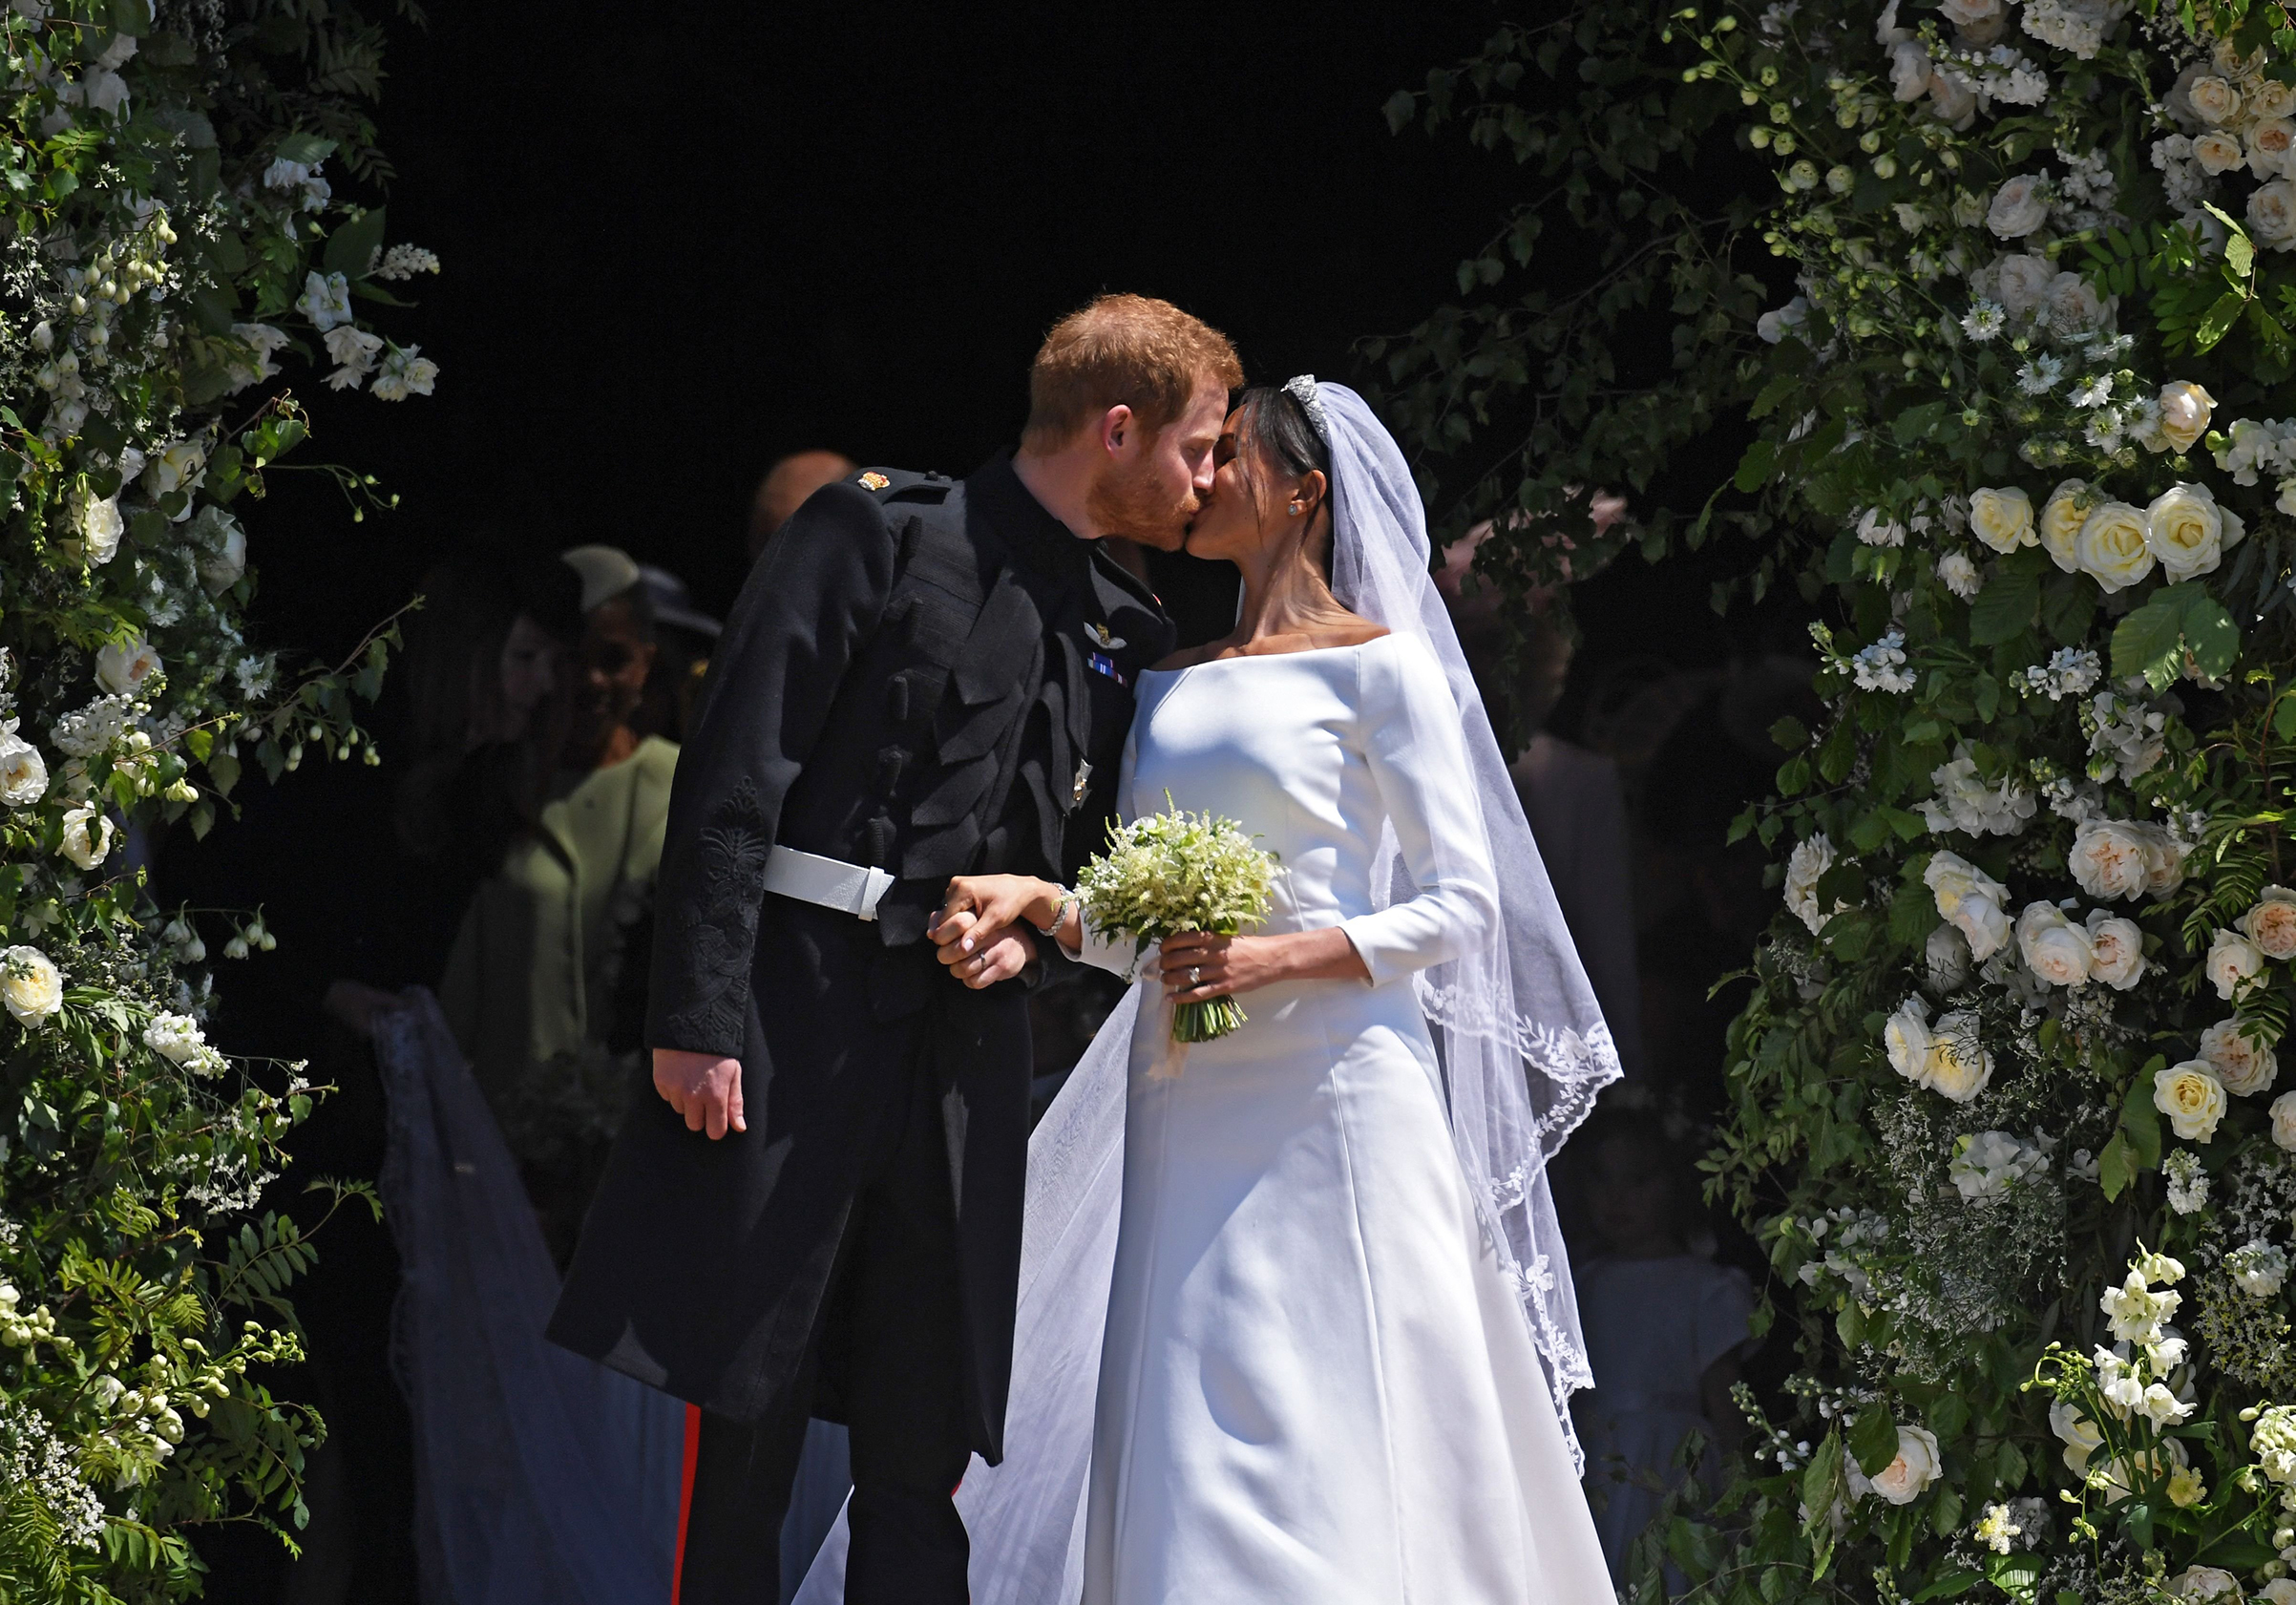 The newlyweds exchange a much-anticipated kiss as they exit the chapel.